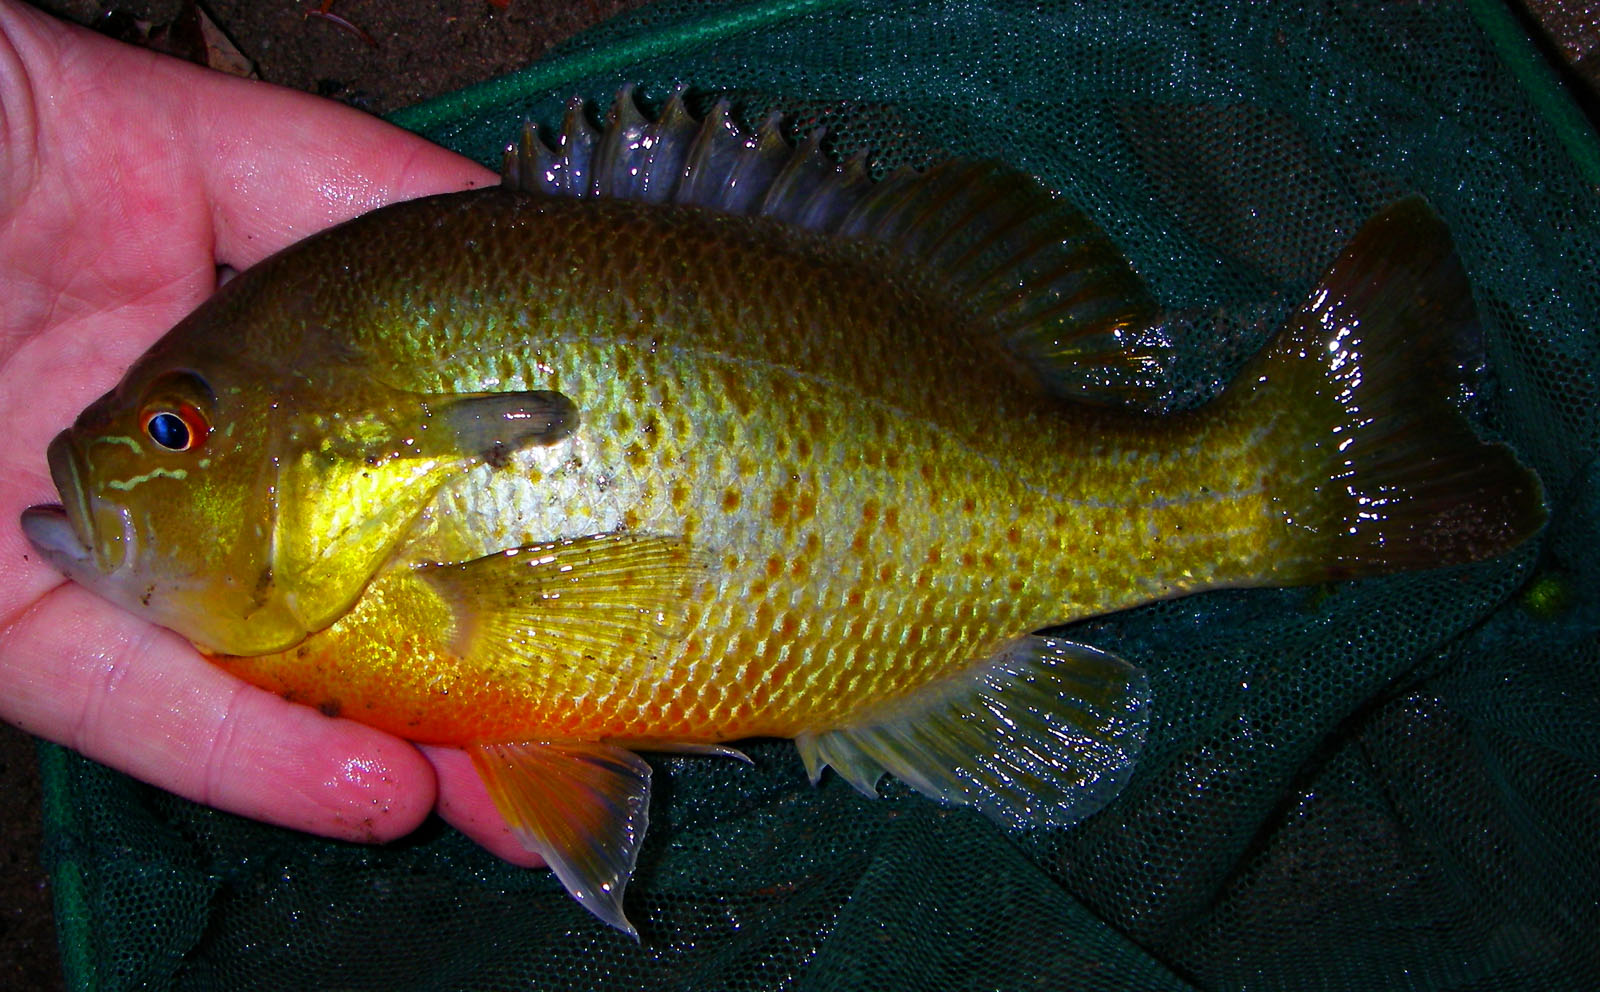 One strange evening on a classic trout stream had brought me nothing but fallfish (albeit nice ones) when I cast outside the main current flow at a fish rising to little flying ants in a back eddy.  It took and, much to my surprise, it was a sunfish I'd never seen before!  Turns out it's a red-breasted sunfish, a common species in the East. From the Beaverkill River in New York.